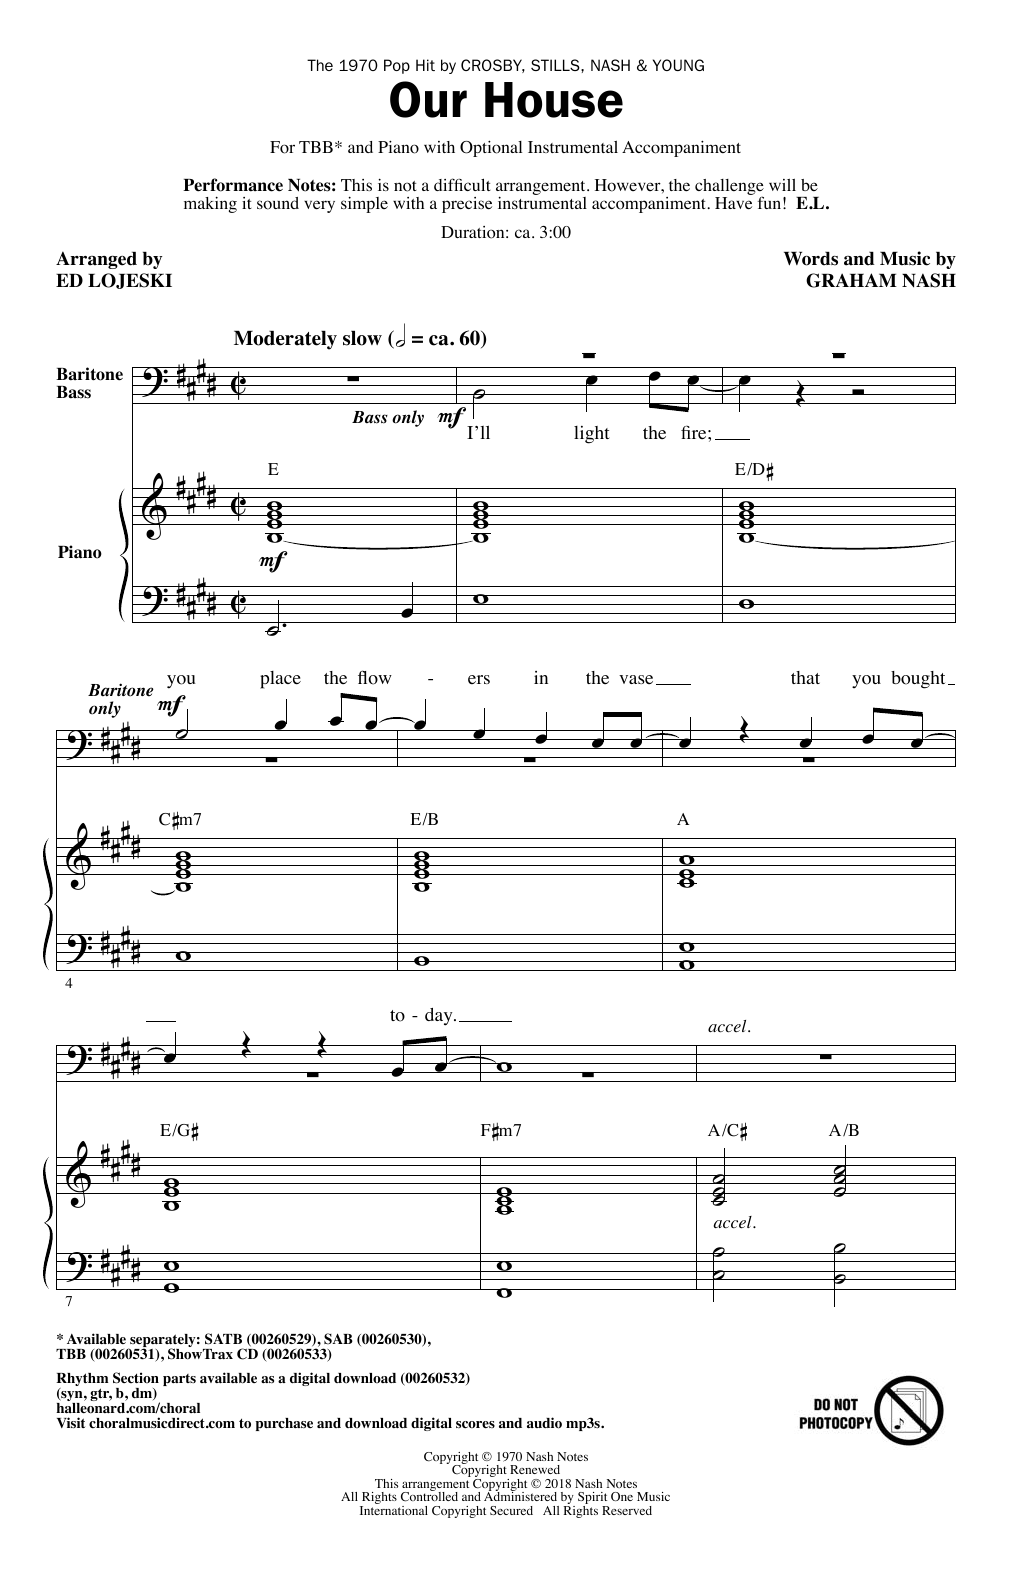 Crosby, Stills, Nash & Young Our House (arr. Ed Lojeski) sheet music notes and chords. Download Printable PDF.